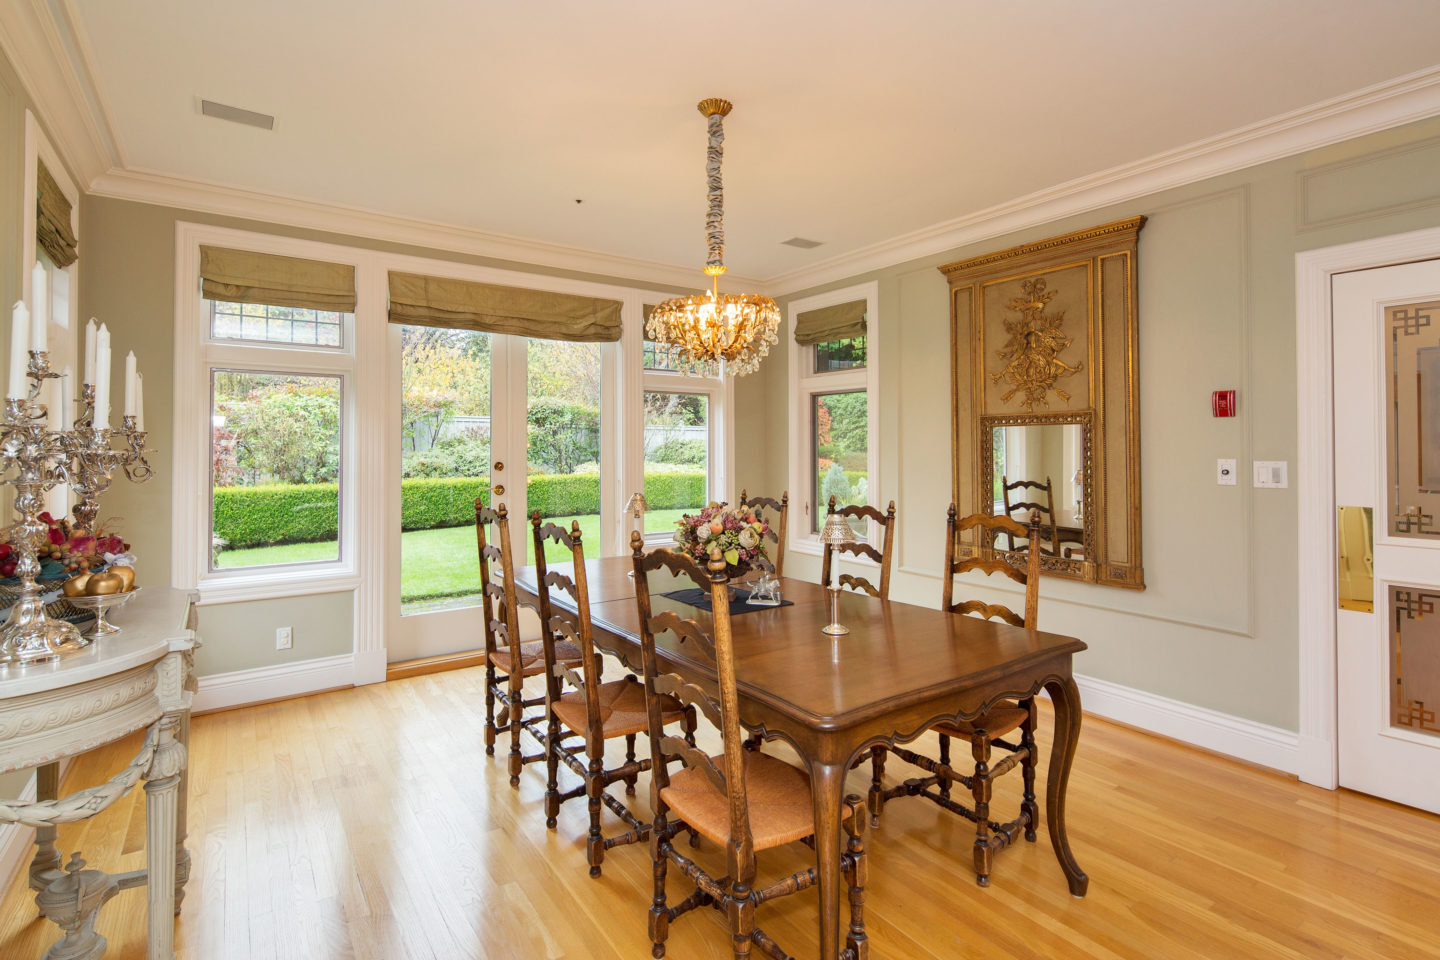 1323 The Crescent Dining Room!